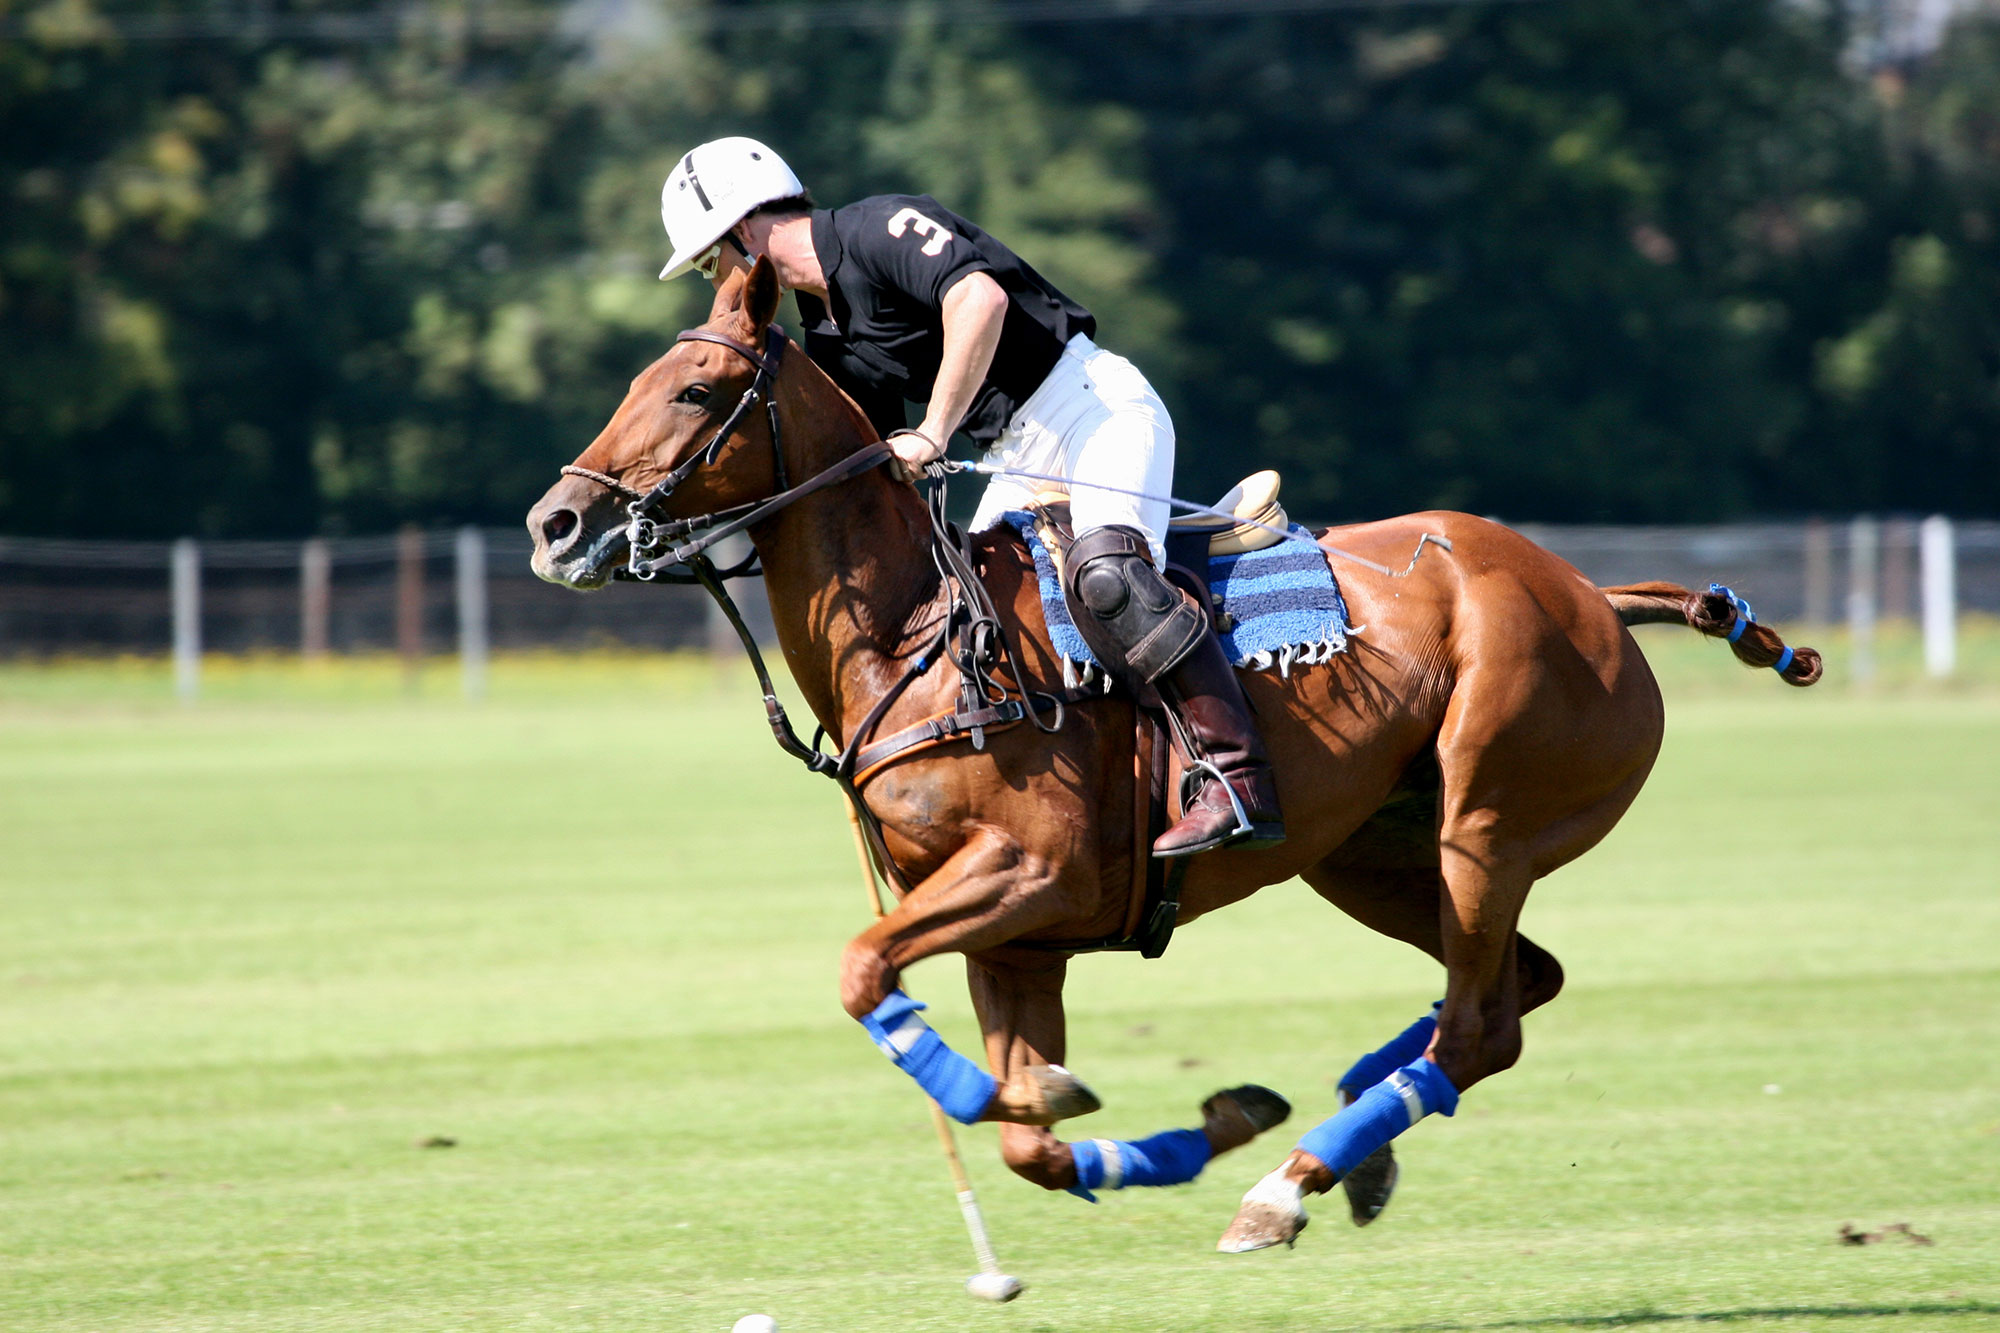 american-rv-motorhome-hire-equestrian-polo-events.jpg